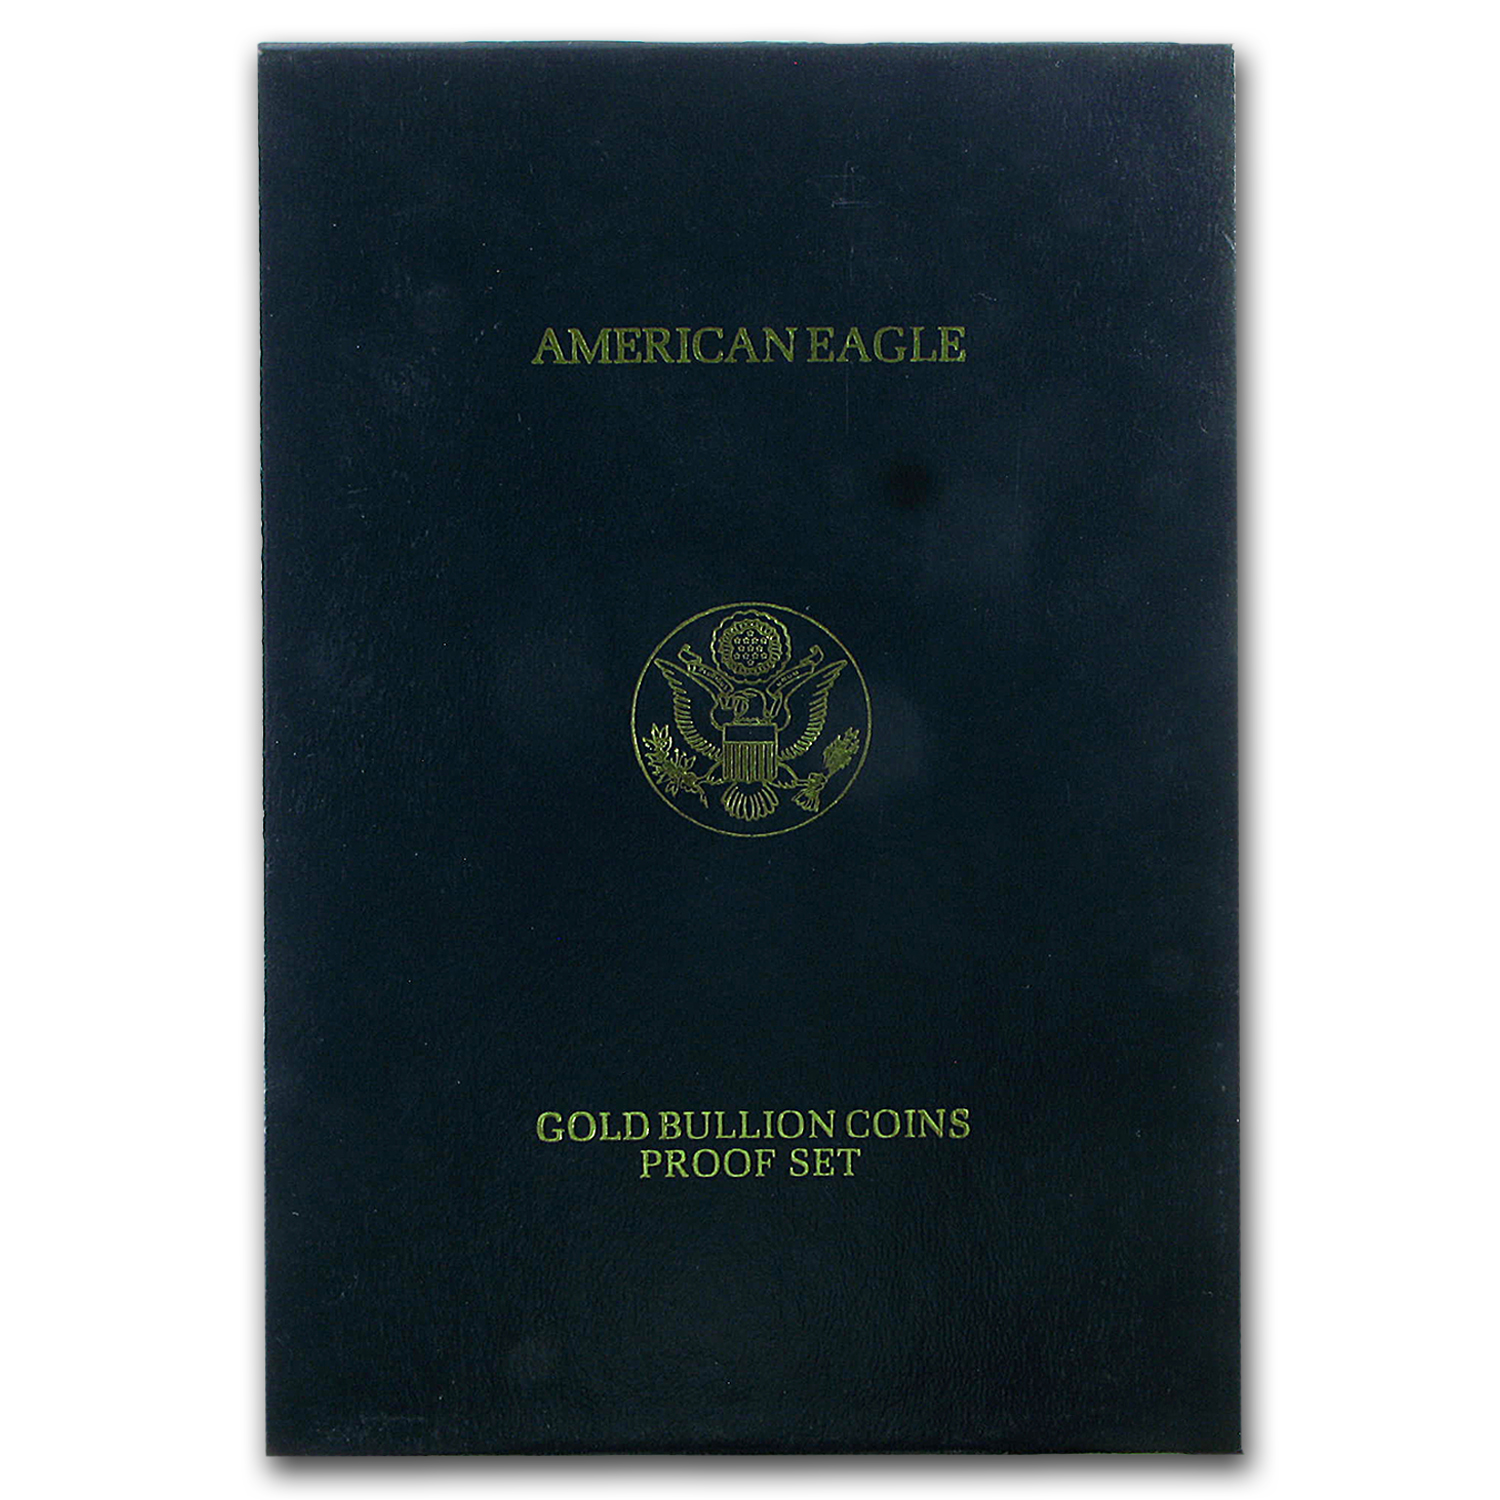 OGP Box & COA - 1988 4-Coin Proof Gold American Eagle Set